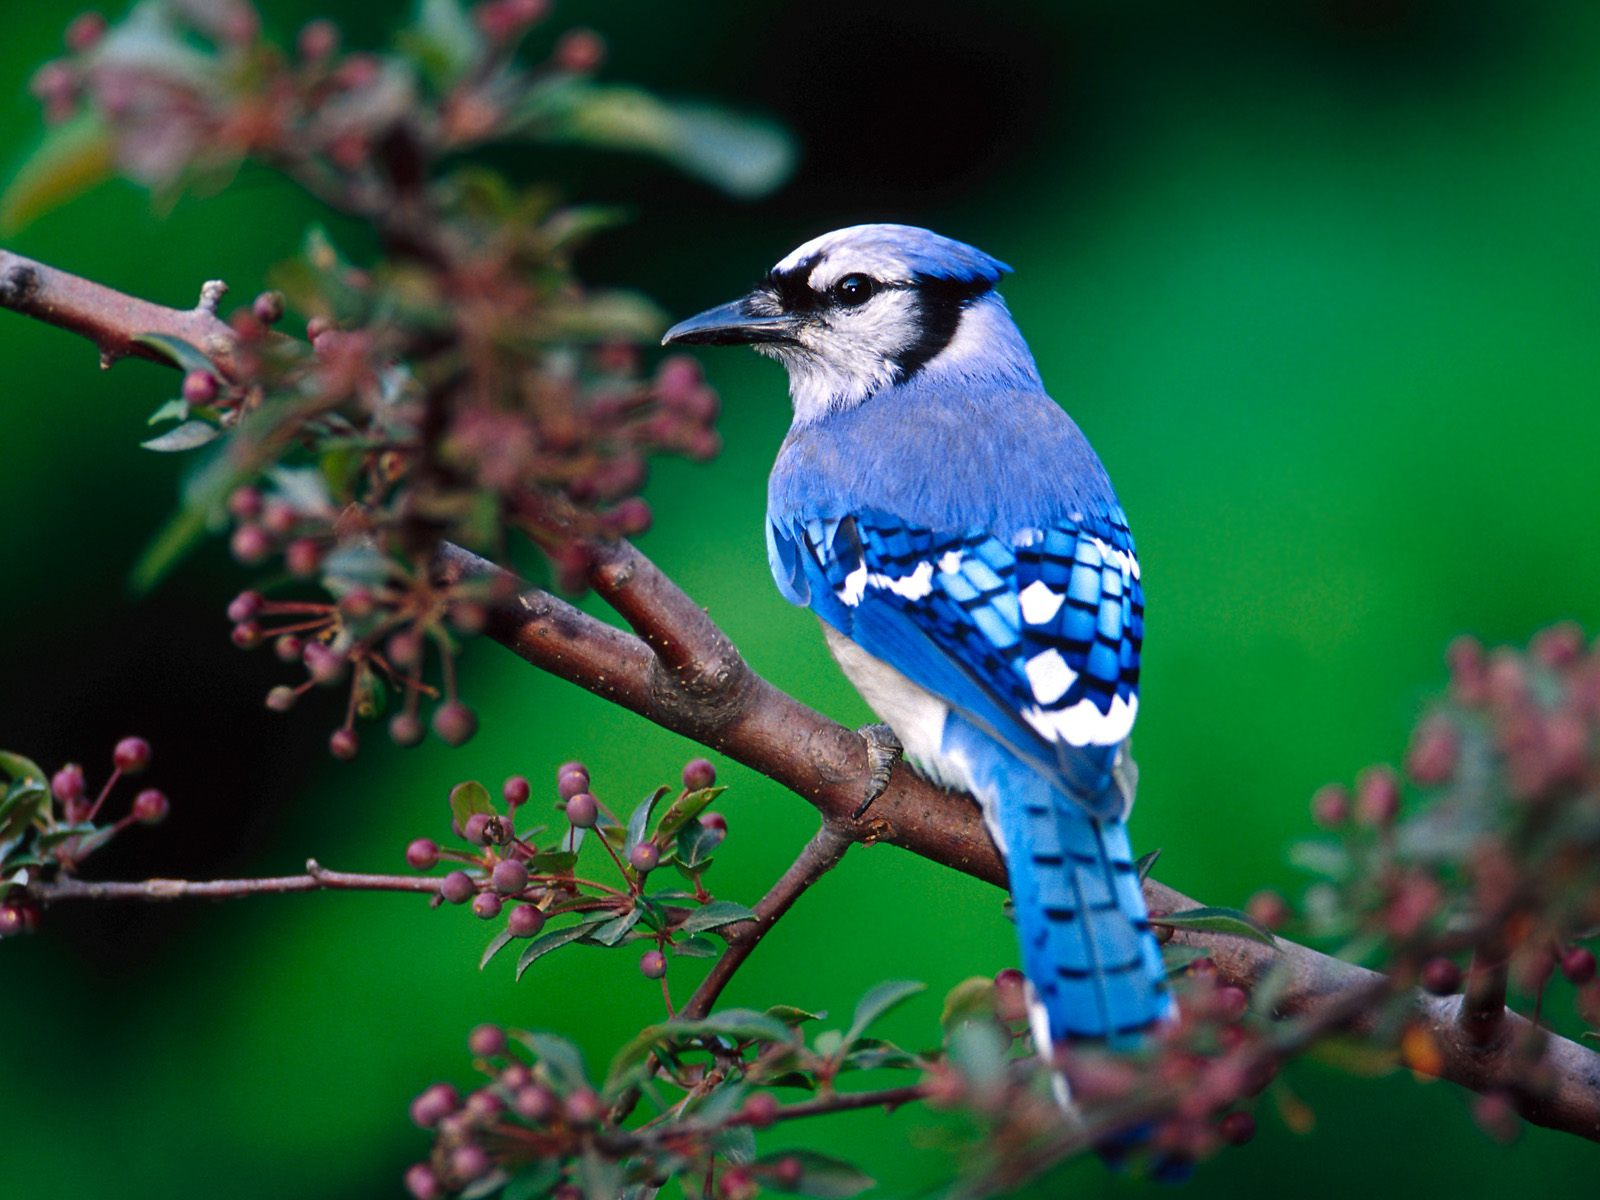 birds nature beautiful bird jay blue green amazing animals bue pretty wallpapers cool love colorful wonderful morning autumn most photography